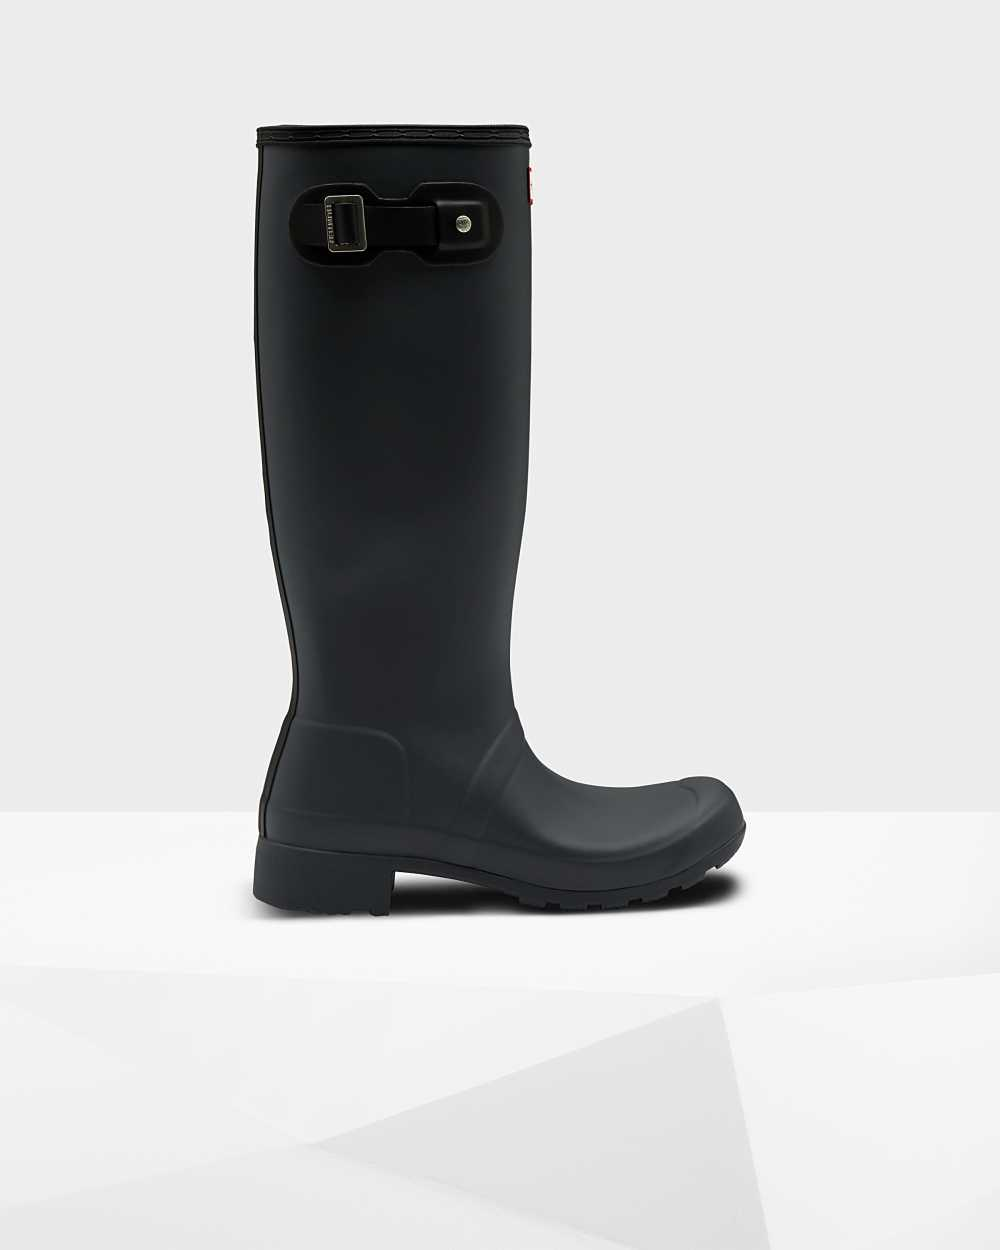 Hunter Original Tour Foldable Womens Tall Wellington Rain Boots In Black Australia (VQAX-54162)